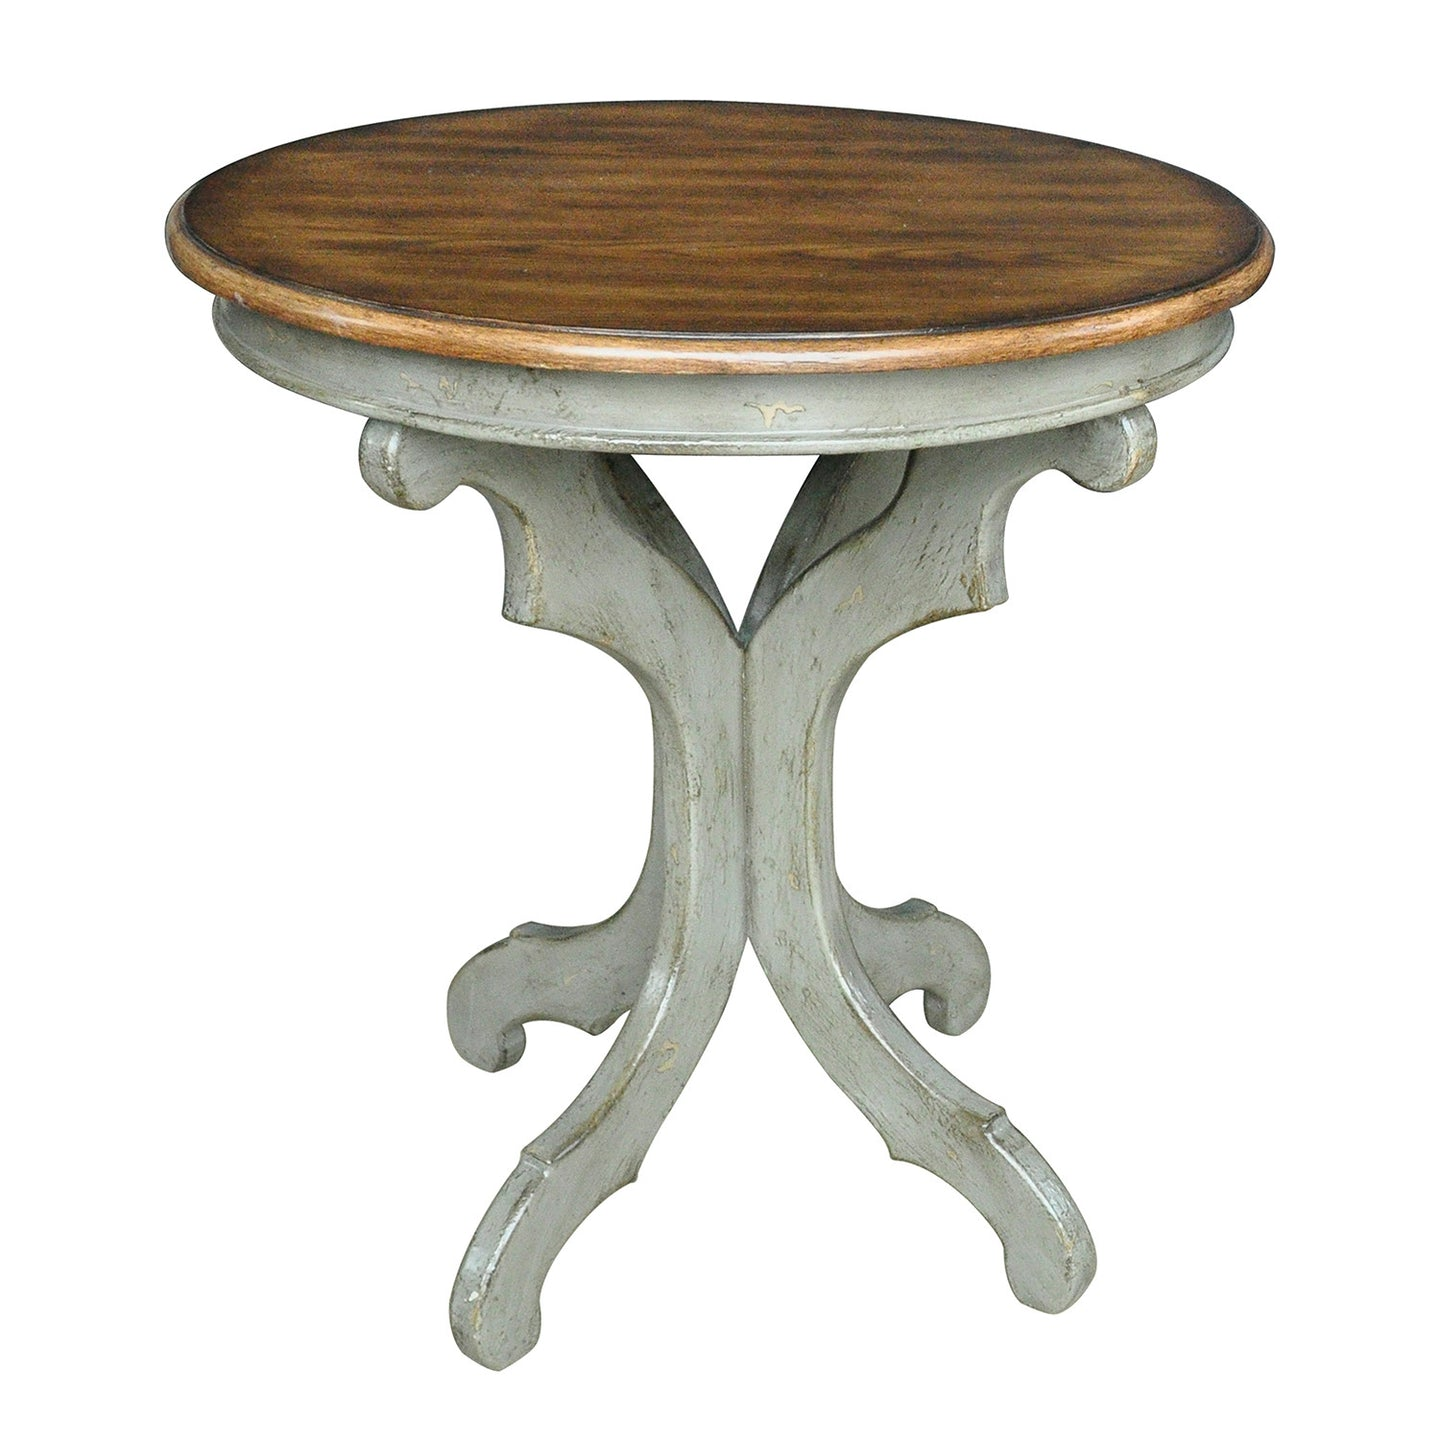 Gresham Textured Grey and Oak Veneer Accent Table - The Rustic Furniture Store